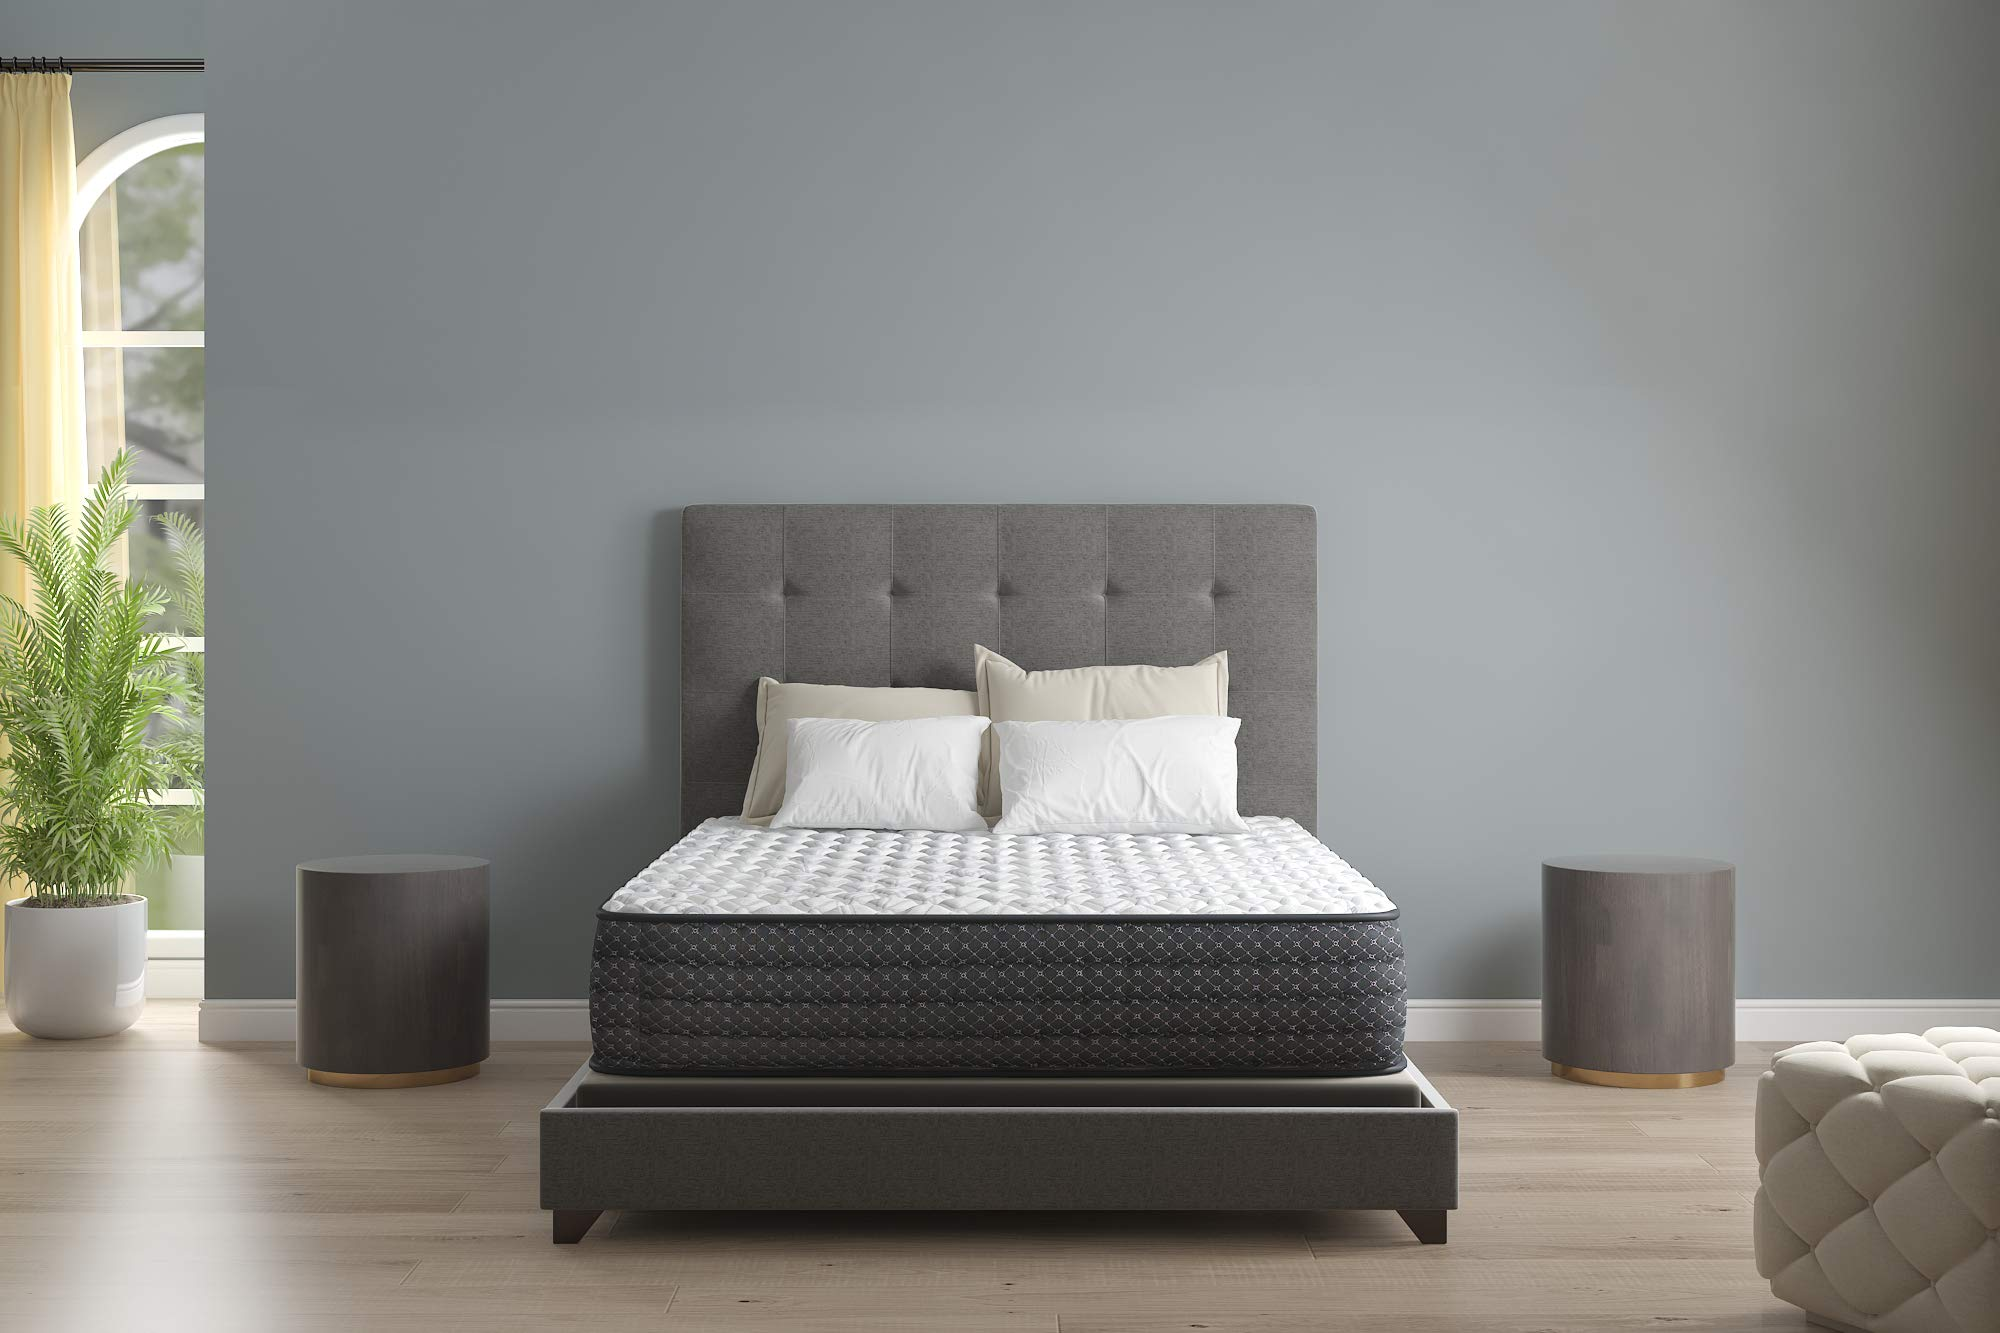 Signature Design by Ashley Limited Edition Firm Queen Mattress, White